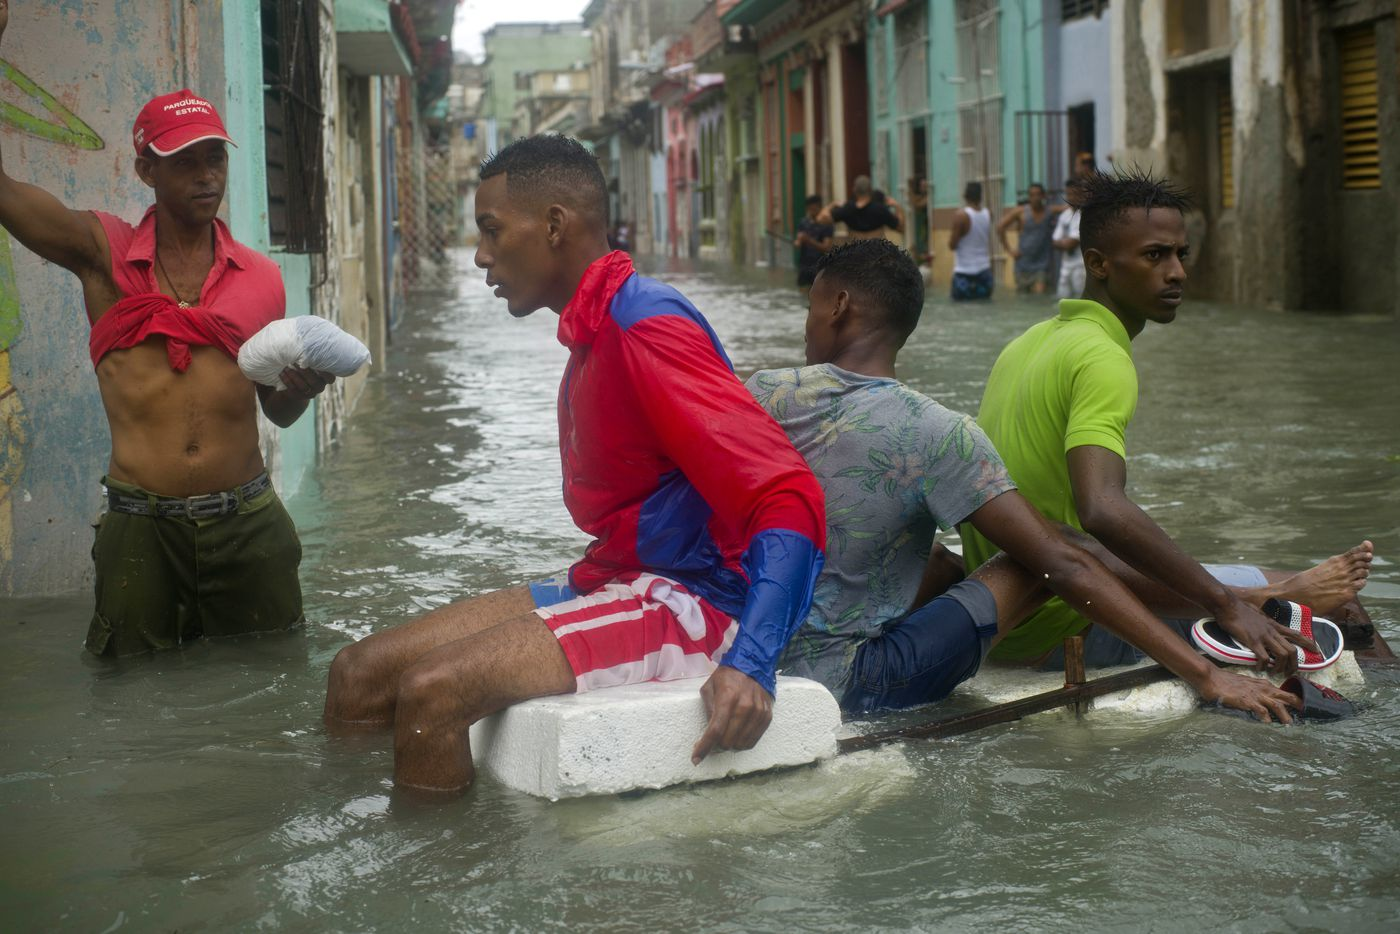 Residents float down a flooded street in Havana, Cuba atop a large piece of styrofoam, after the passing of Hurricane Irma in Cuba, Sunday, Sept. 10, 2017. The powerful storm ripped roofs off houses, collapsed buildings and flooded hundreds of miles of coastline after cutting a trail of destruction across the Caribbean.